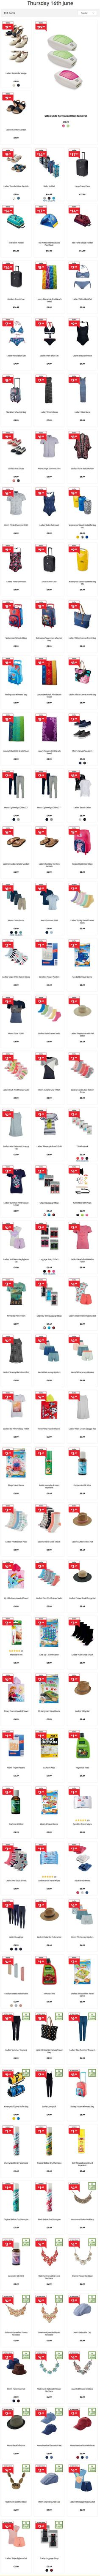 Aldi Special Buys Thursday 16th June 2016 - http://www.olcatalogue.co.uk/aldi/aldi-special-buys.html